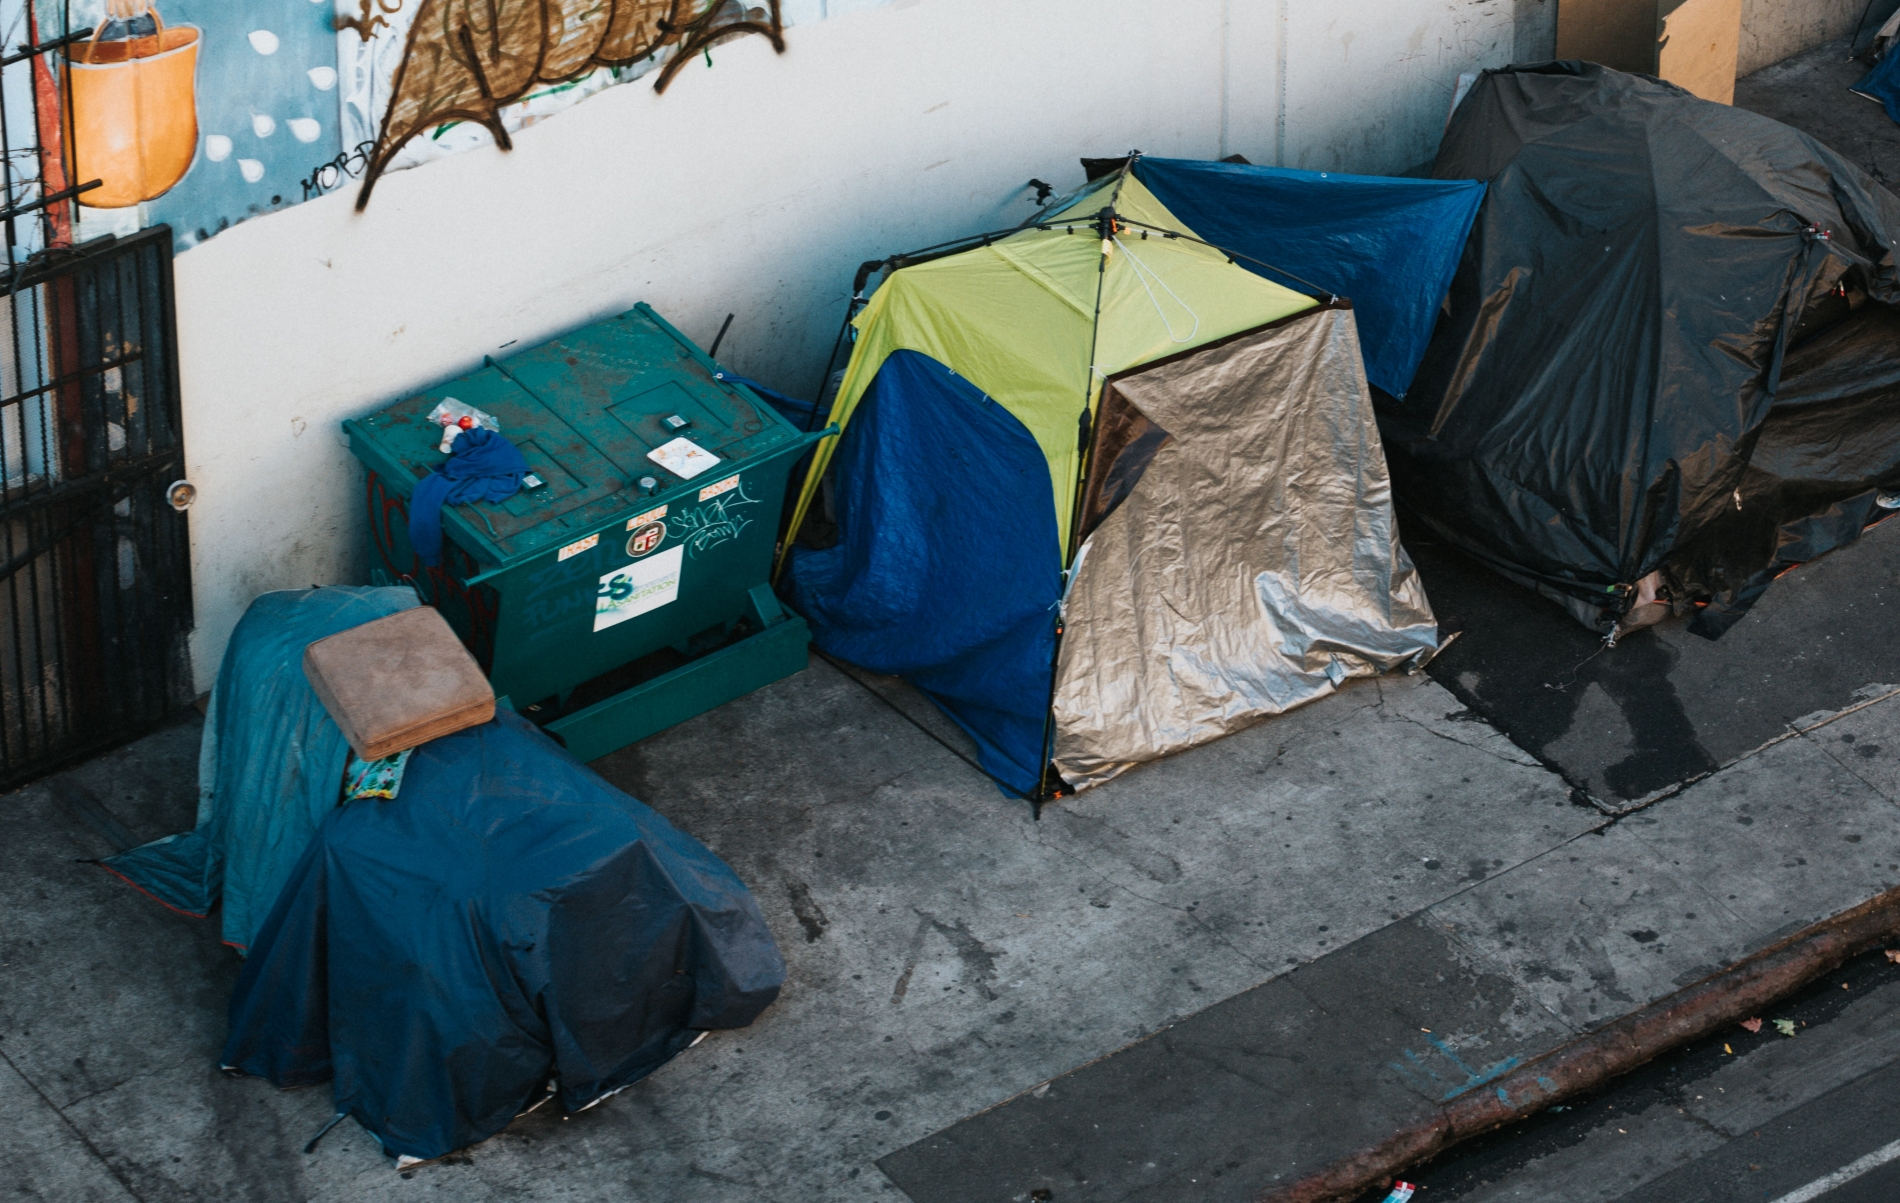 An urban encampment of tents for unhoused people